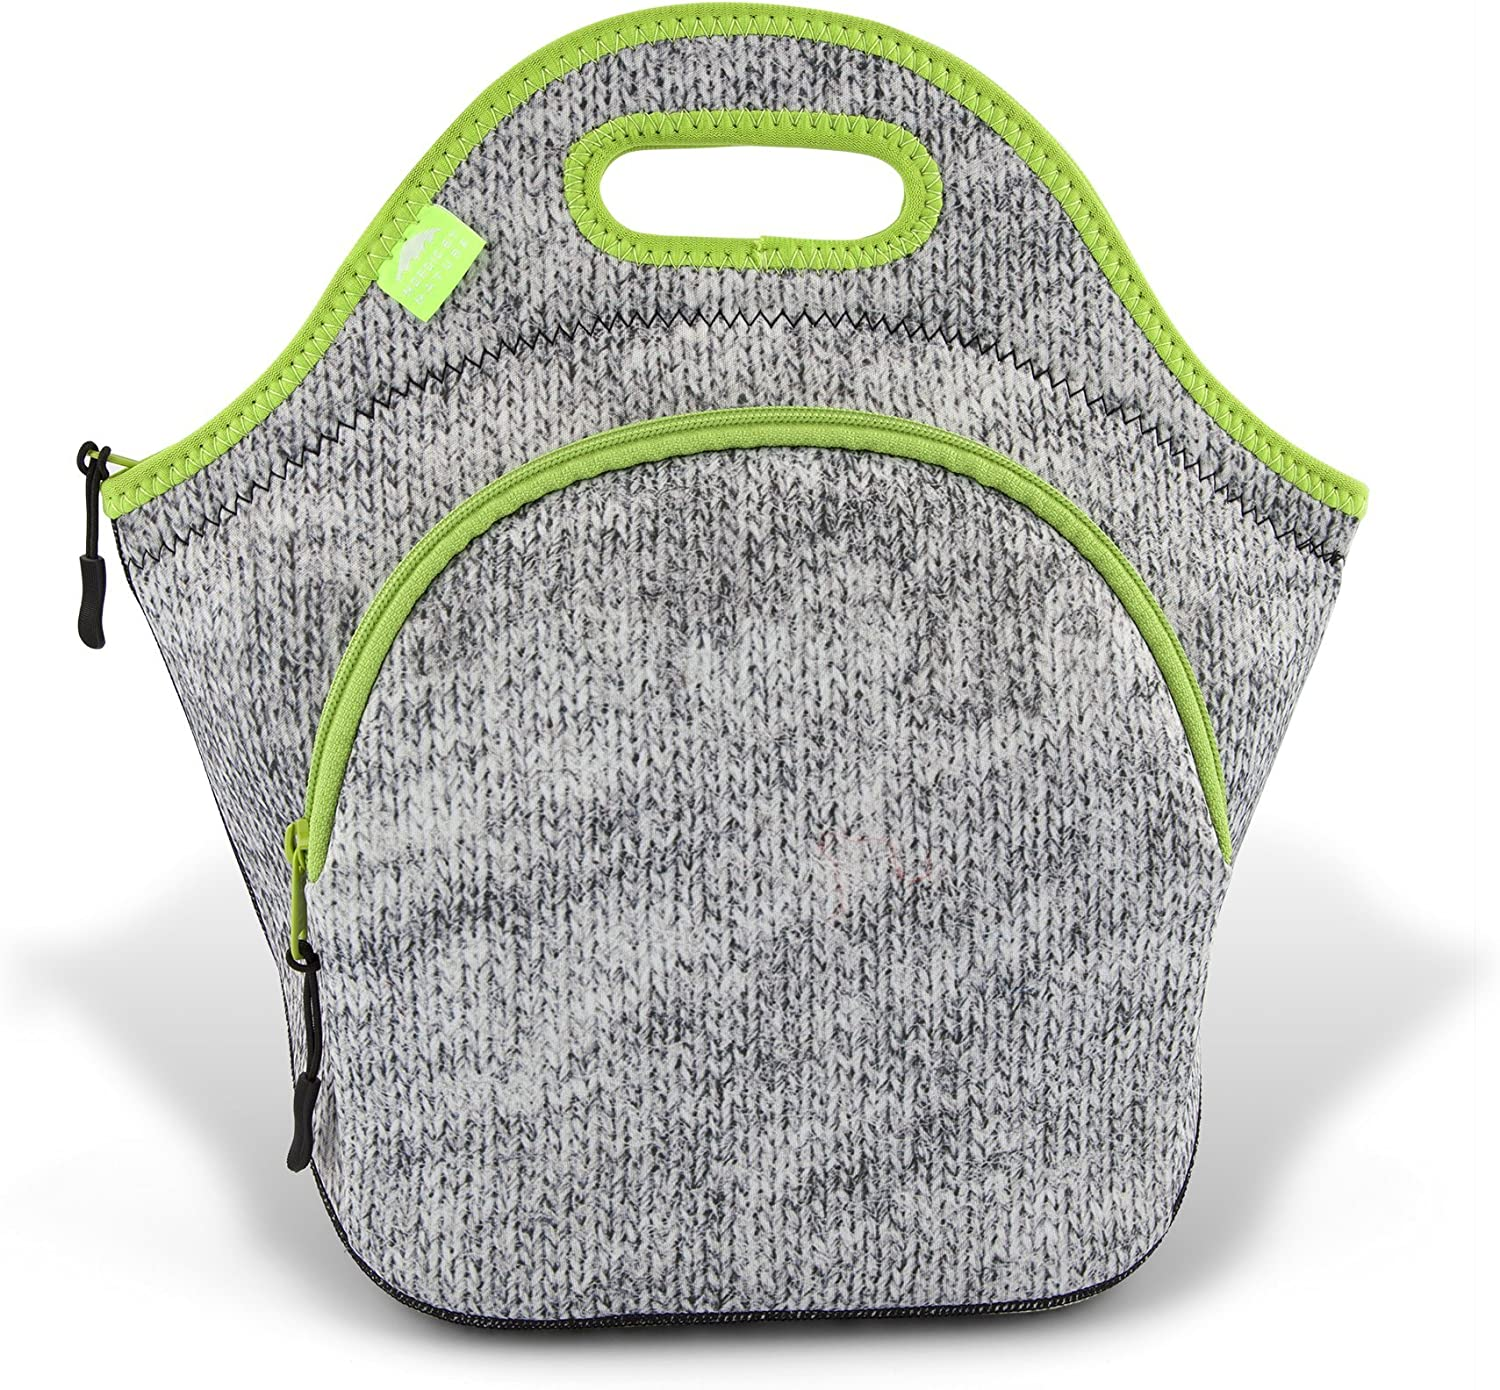 Lunch Bags For Women & Lunch Boxes For Kids | Nordic By Nature Premium Insulated Lunch Box Extra Thick Neoprene, Soft Cotton Feel, Premium Stitching, Outside Pocket, Washable (L) Gray Melange